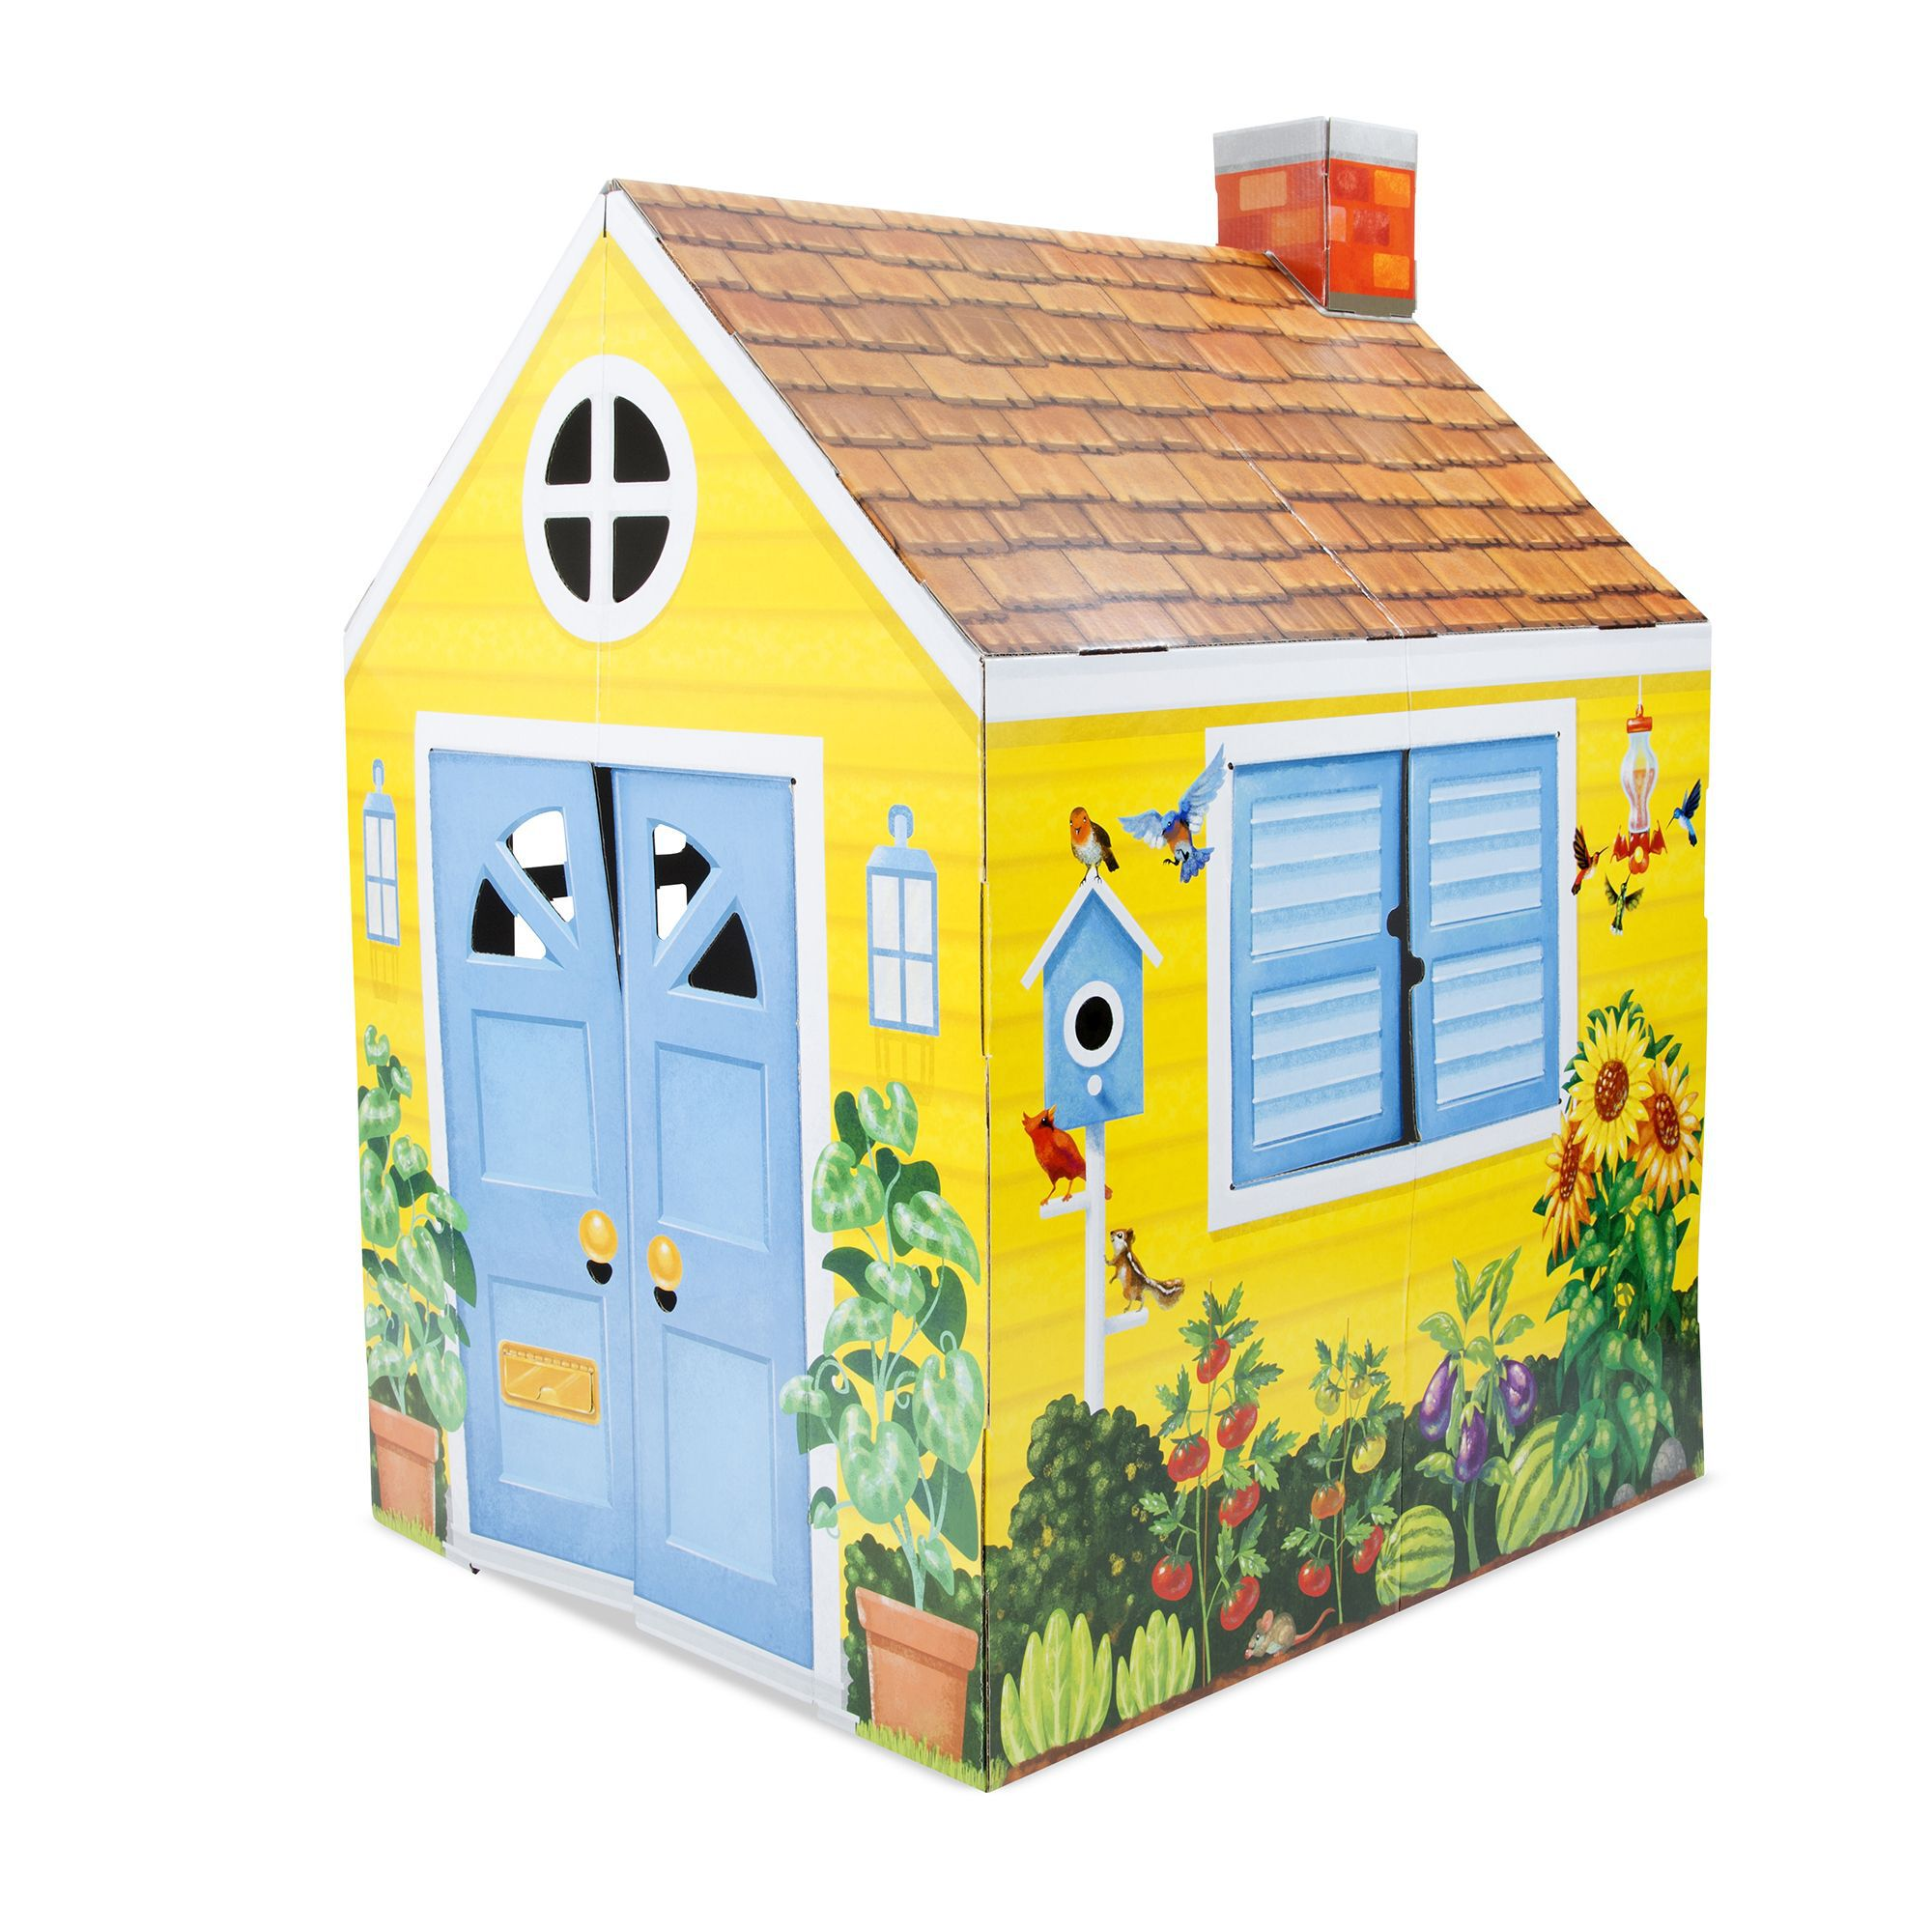 country cottage indoor playhouse melissa and doug rh melissaanddoug com countryside cottage playhouse country cottage indoor playhouse